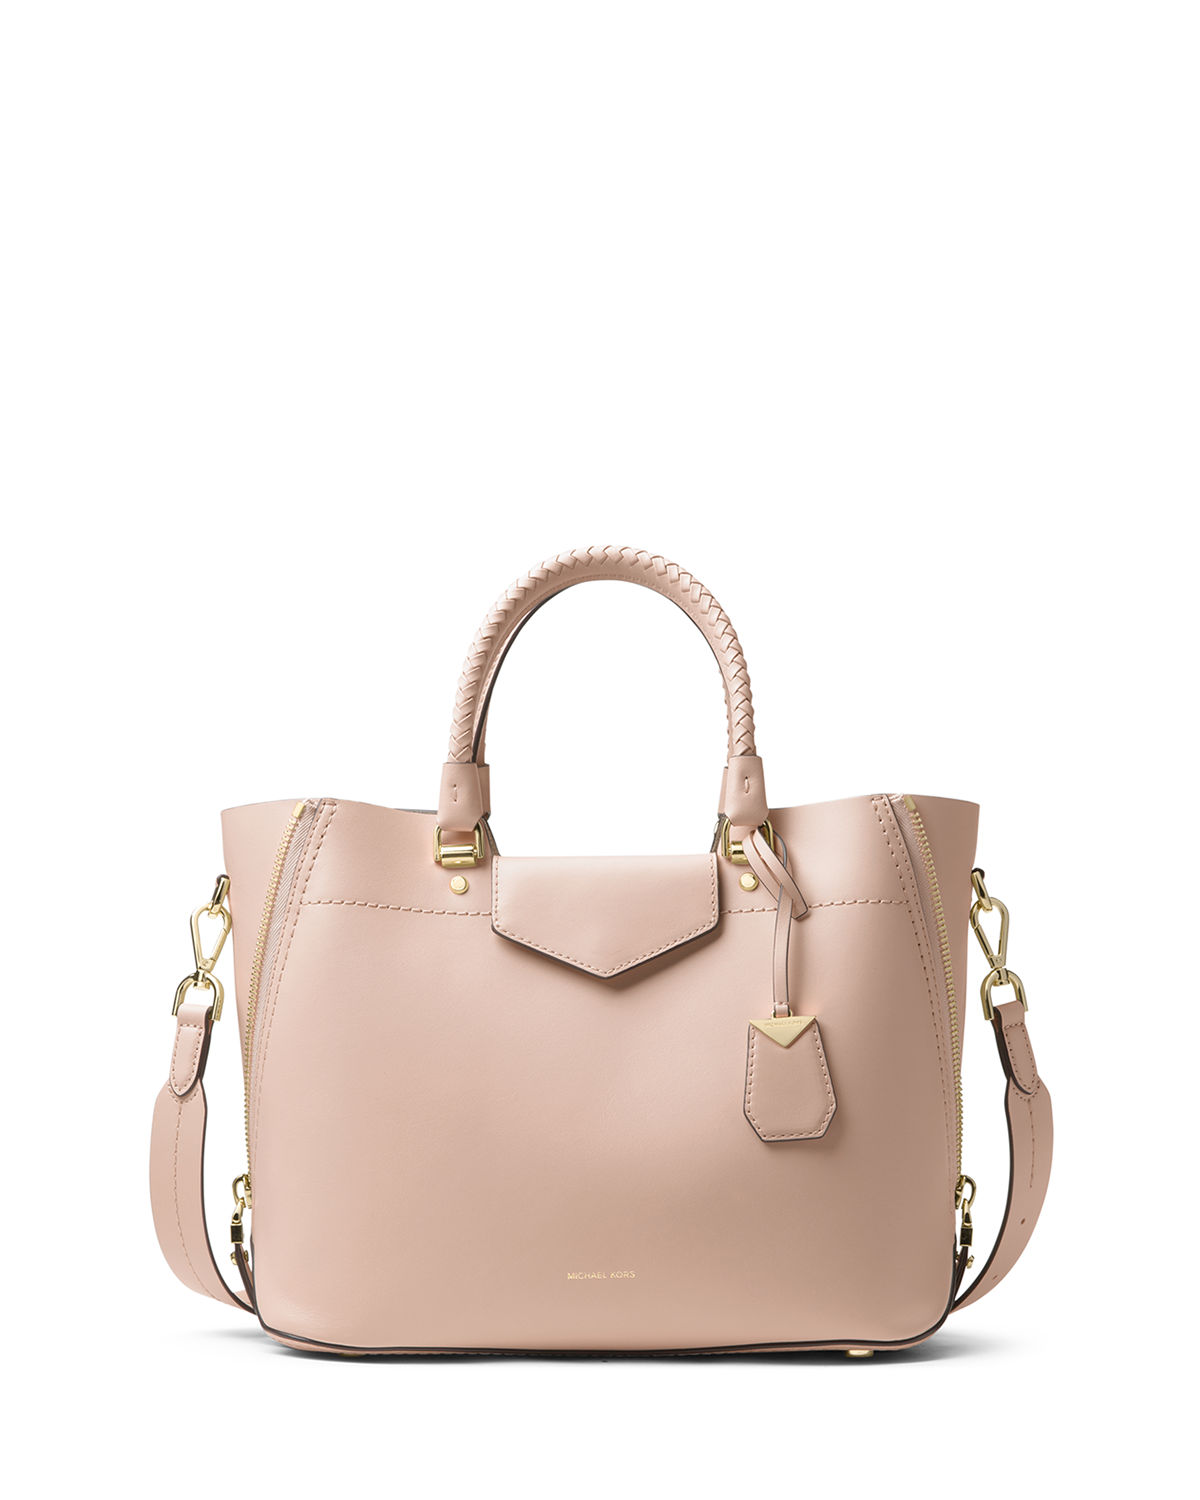 Blakely Medium Leather Tote Bag